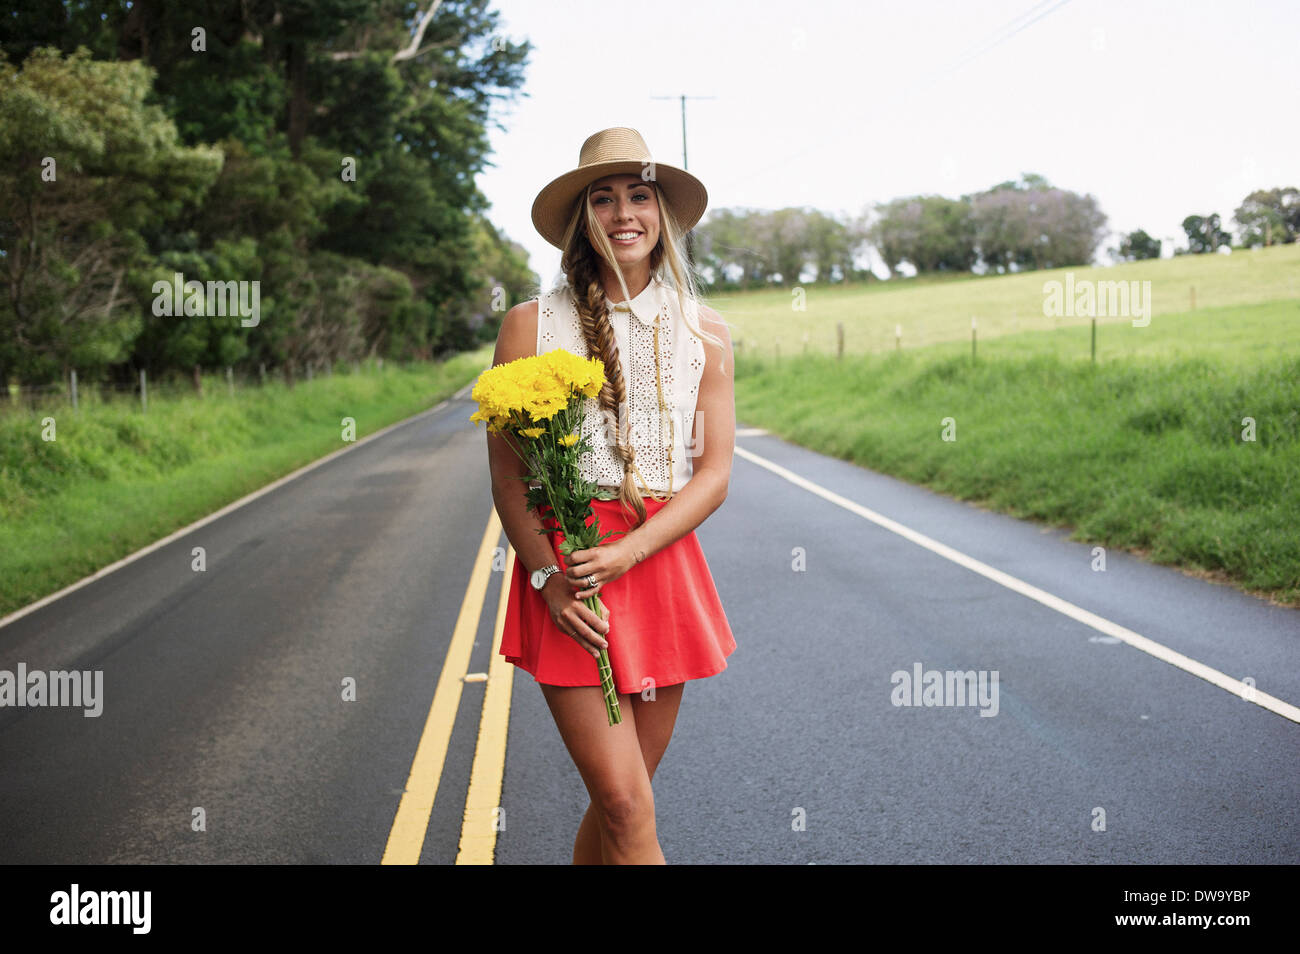 Young woman with flowers on road - Stock Image